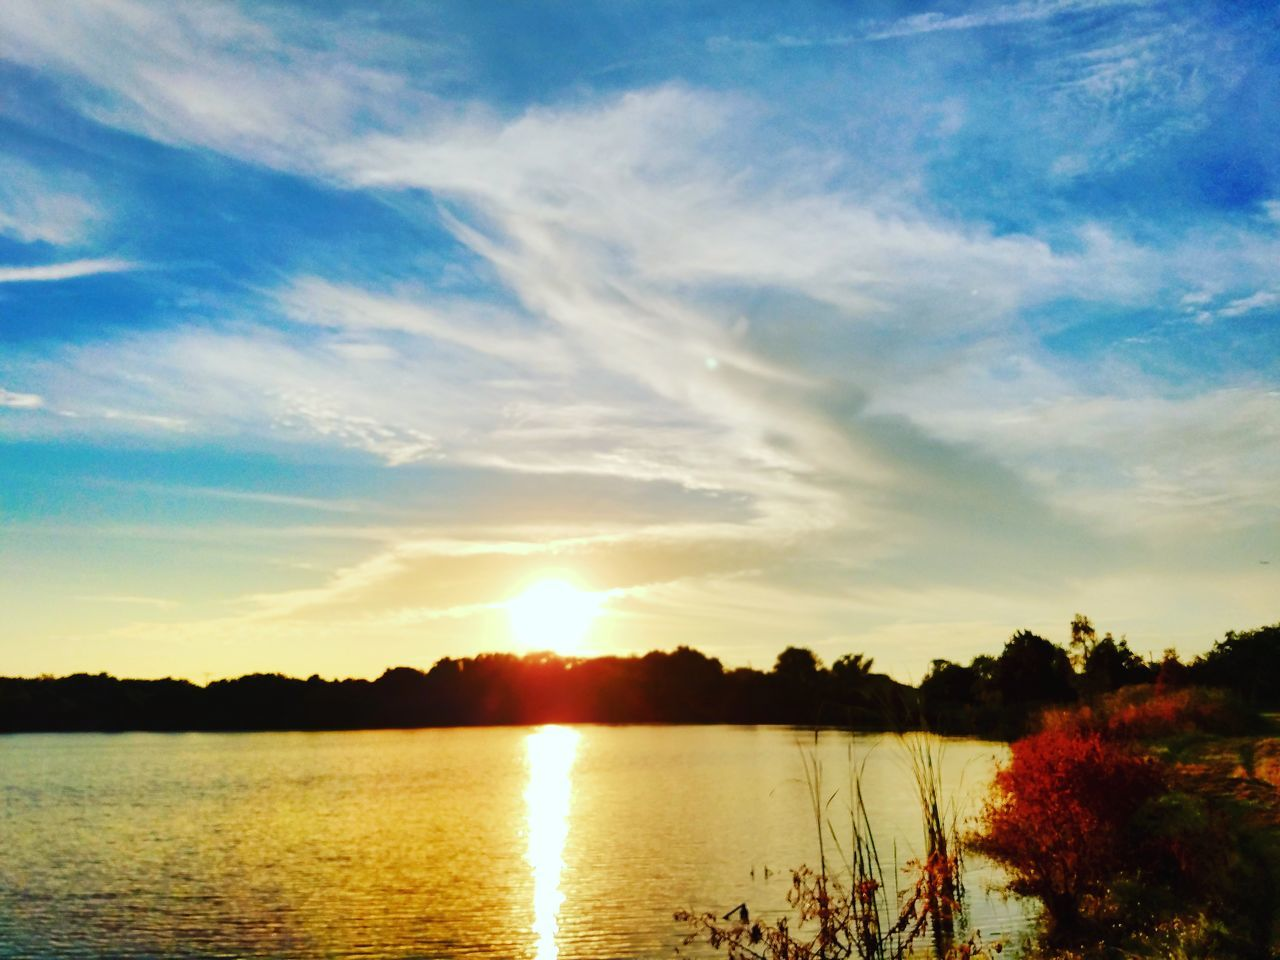 Sunset Reflection Nature Water Sky Scenics Outdoors Landscape No People Tree Day